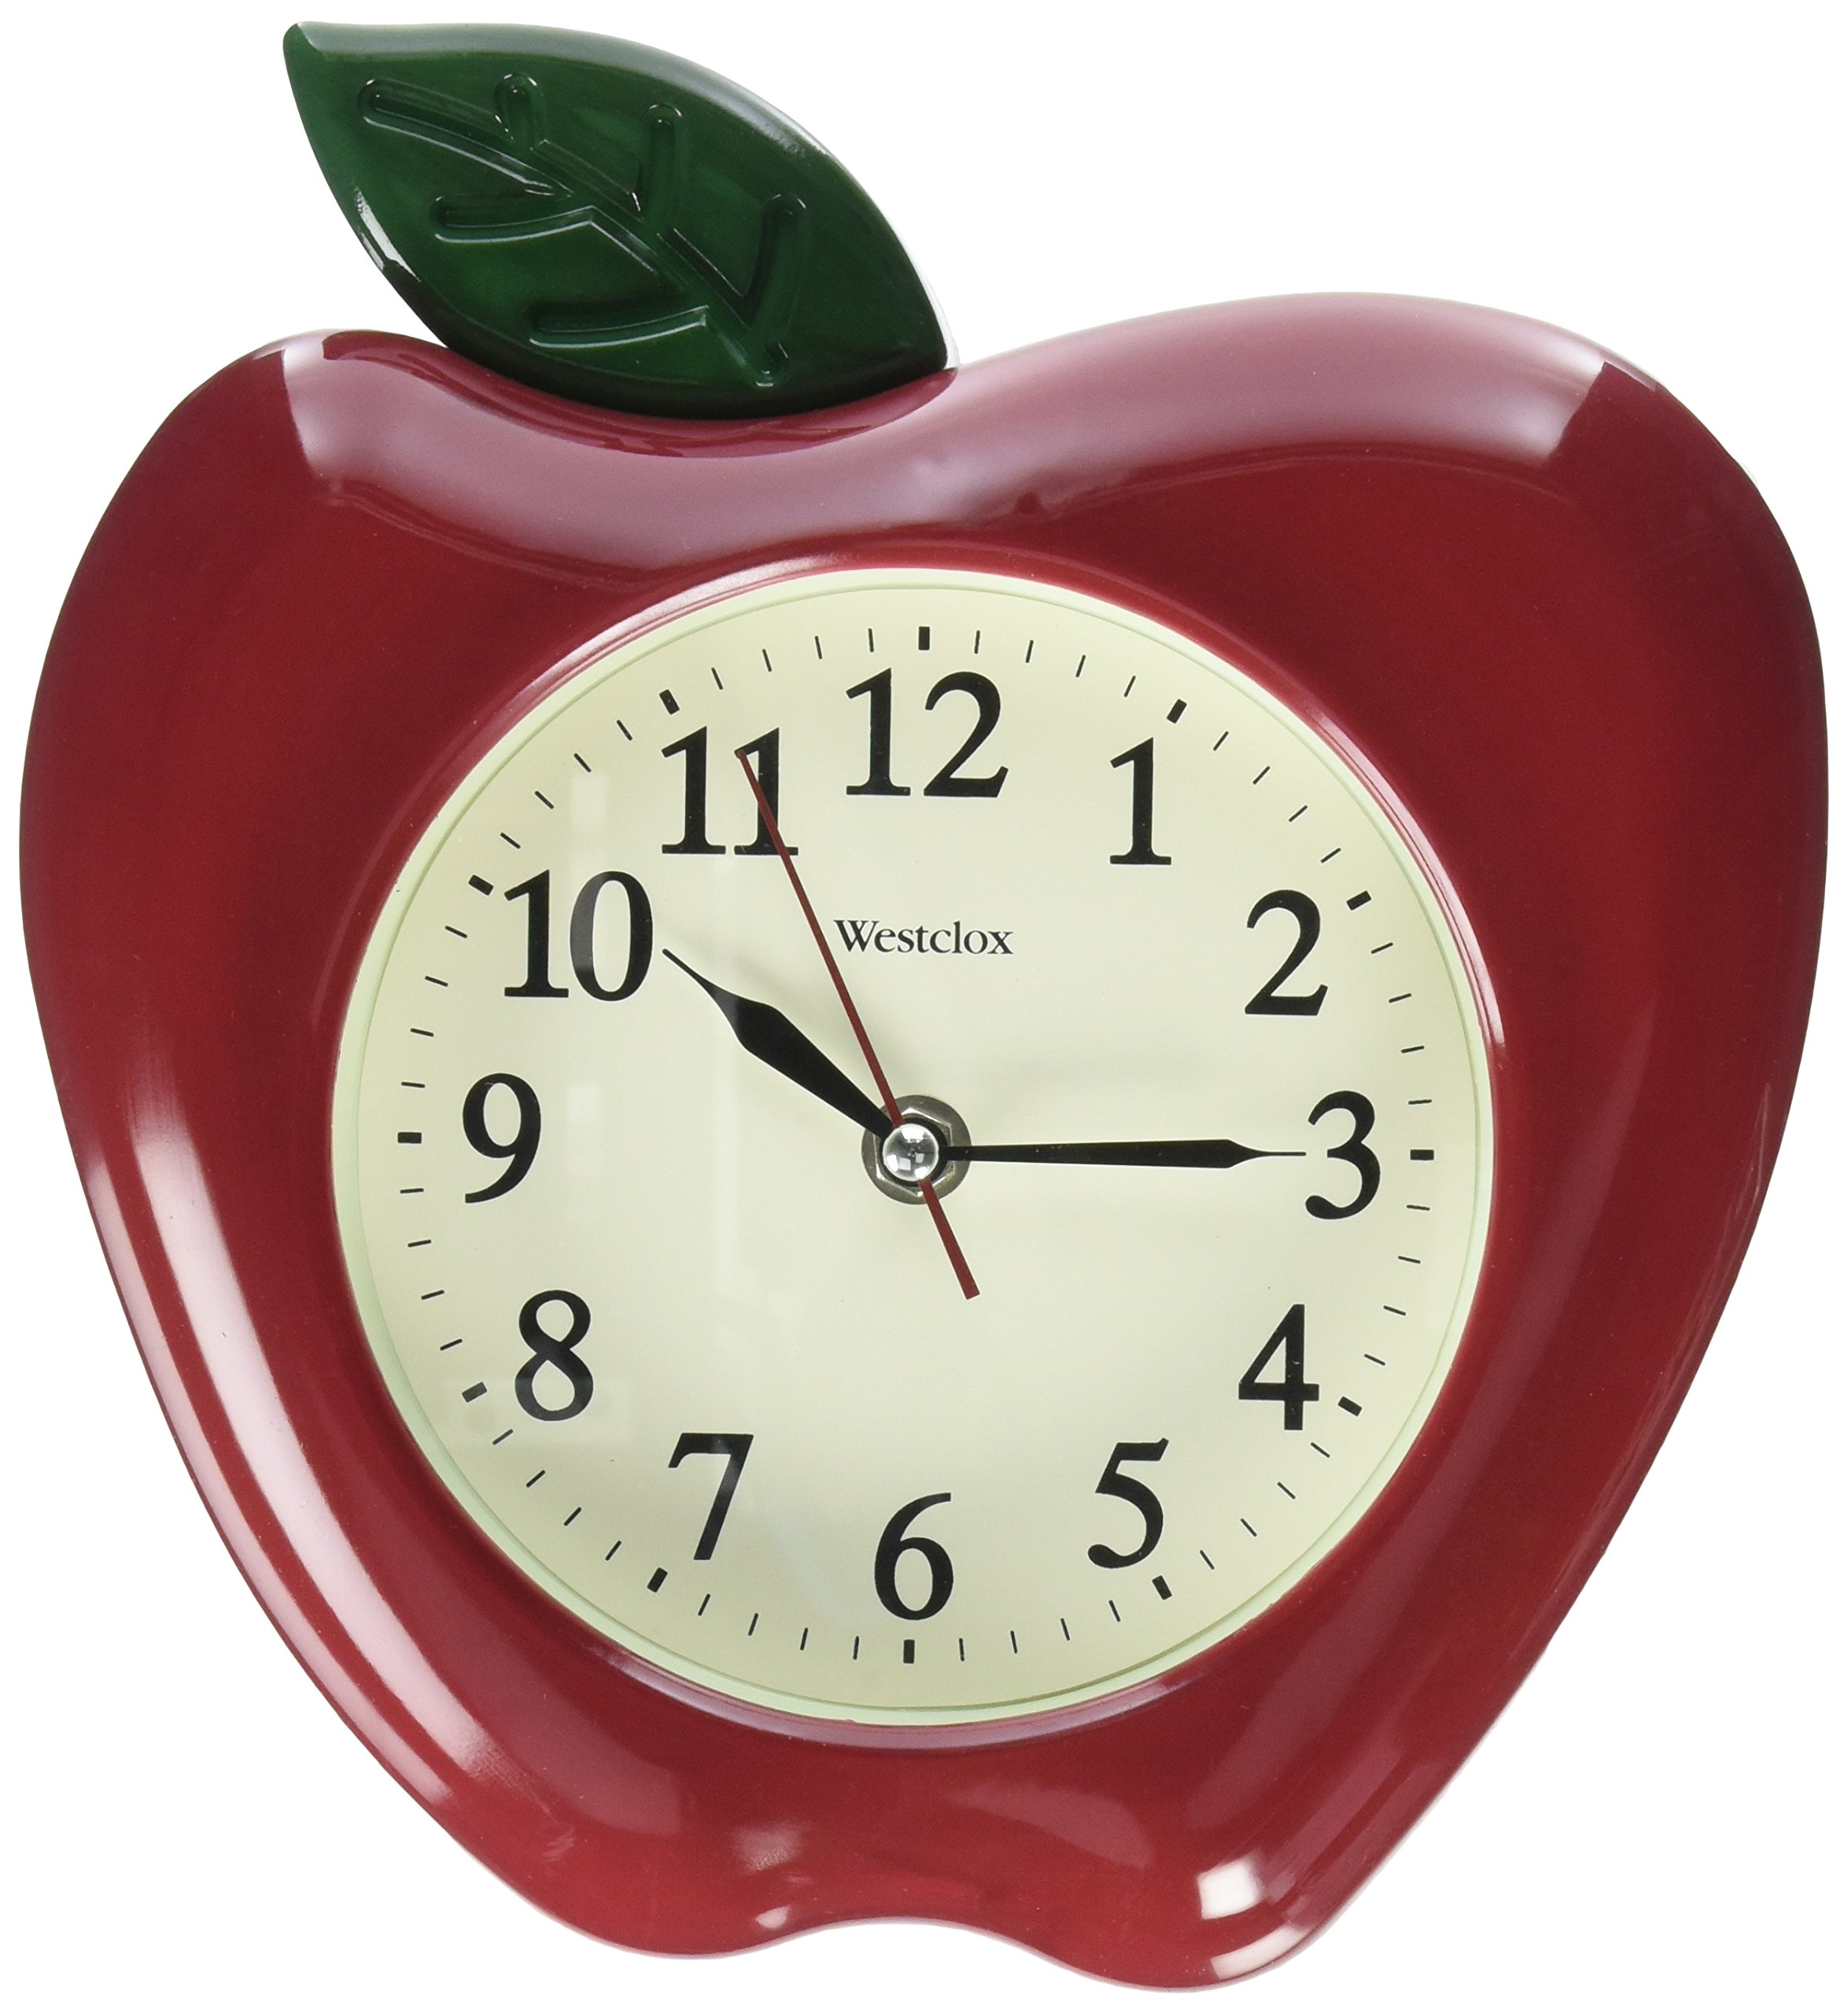 Battery Operated 3D Wall Clock Apple Design Analog Home Kitchen